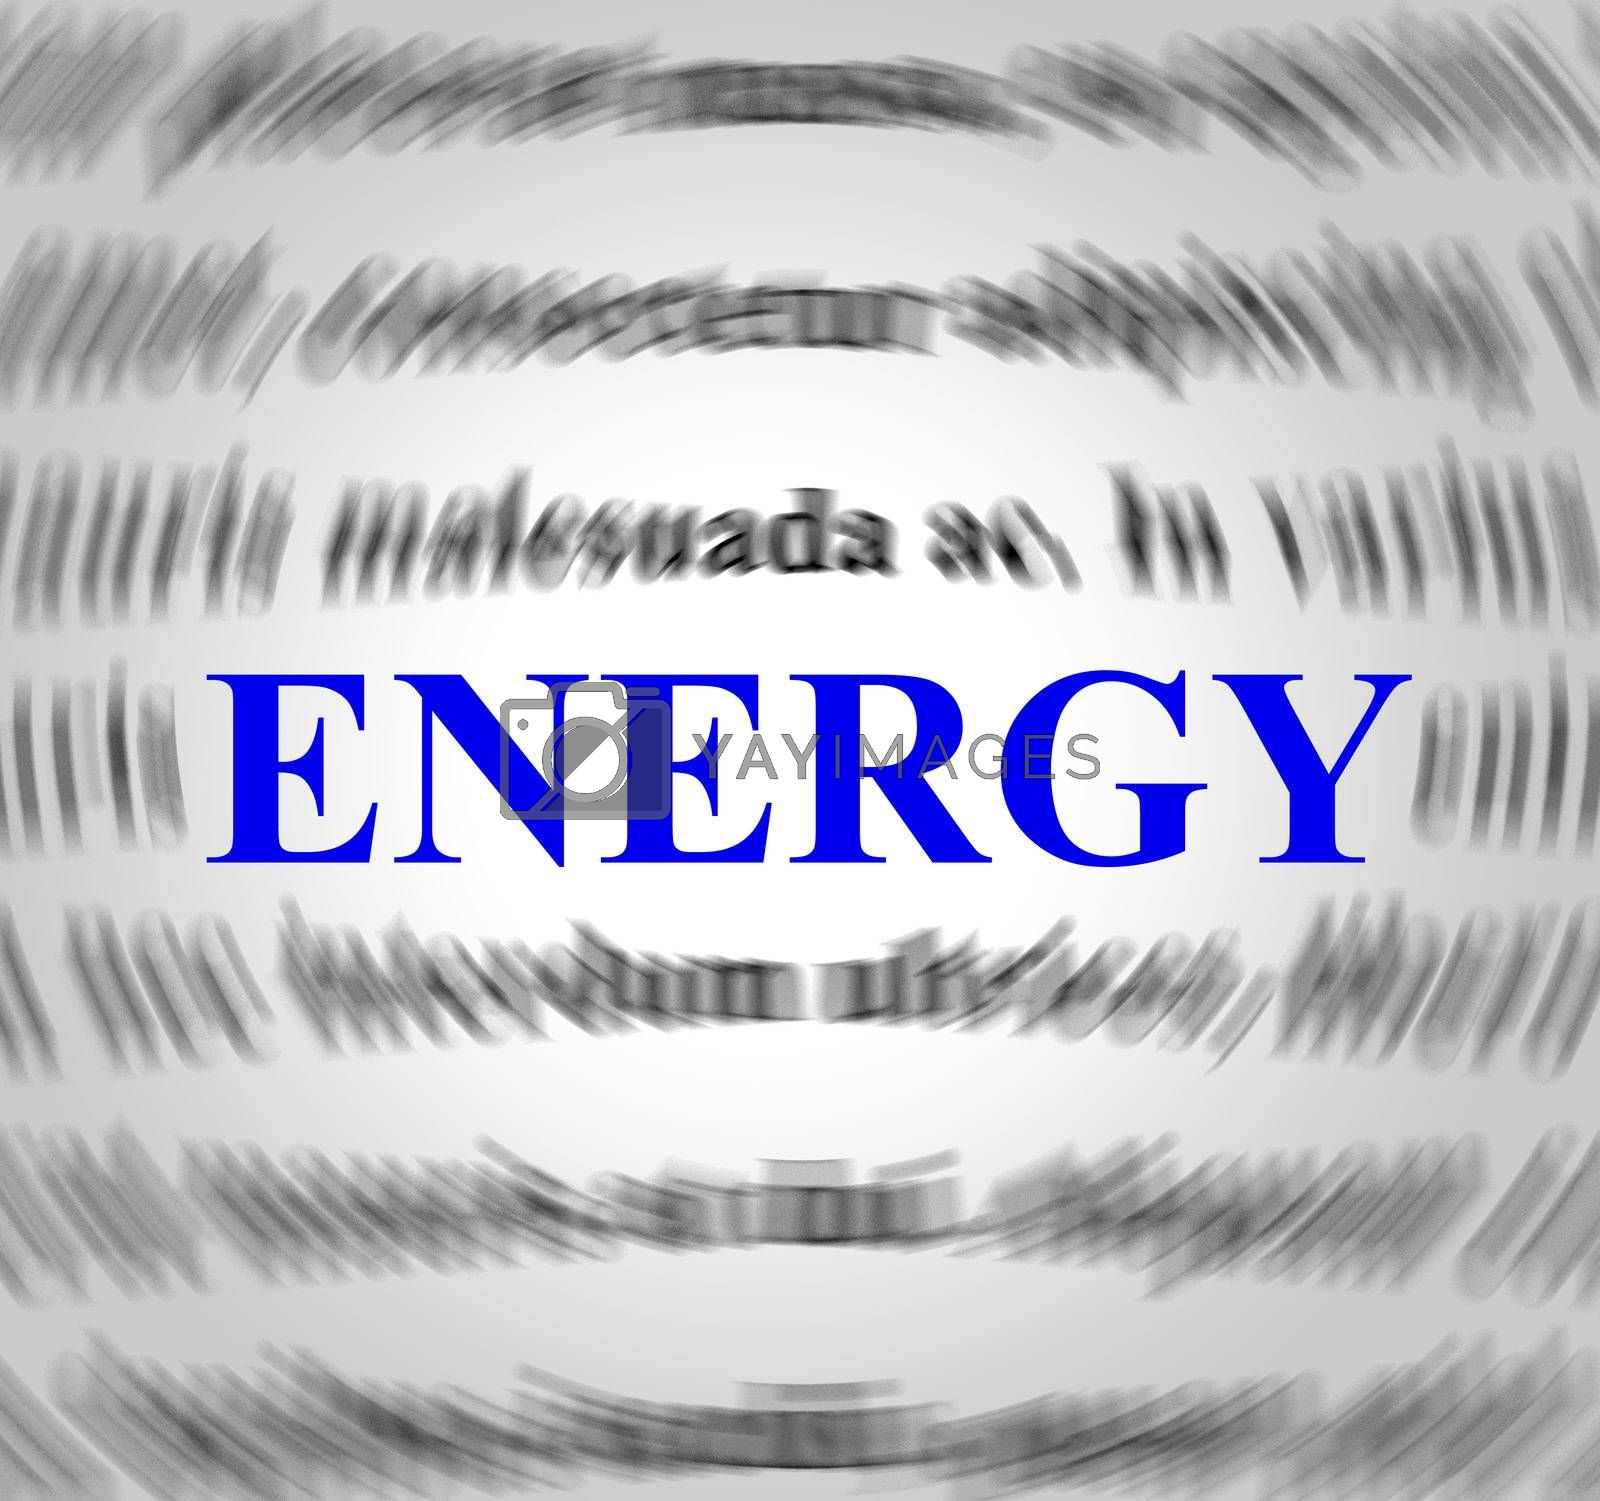 Energy Definition Represents Power Source And Powered by stuartmiles